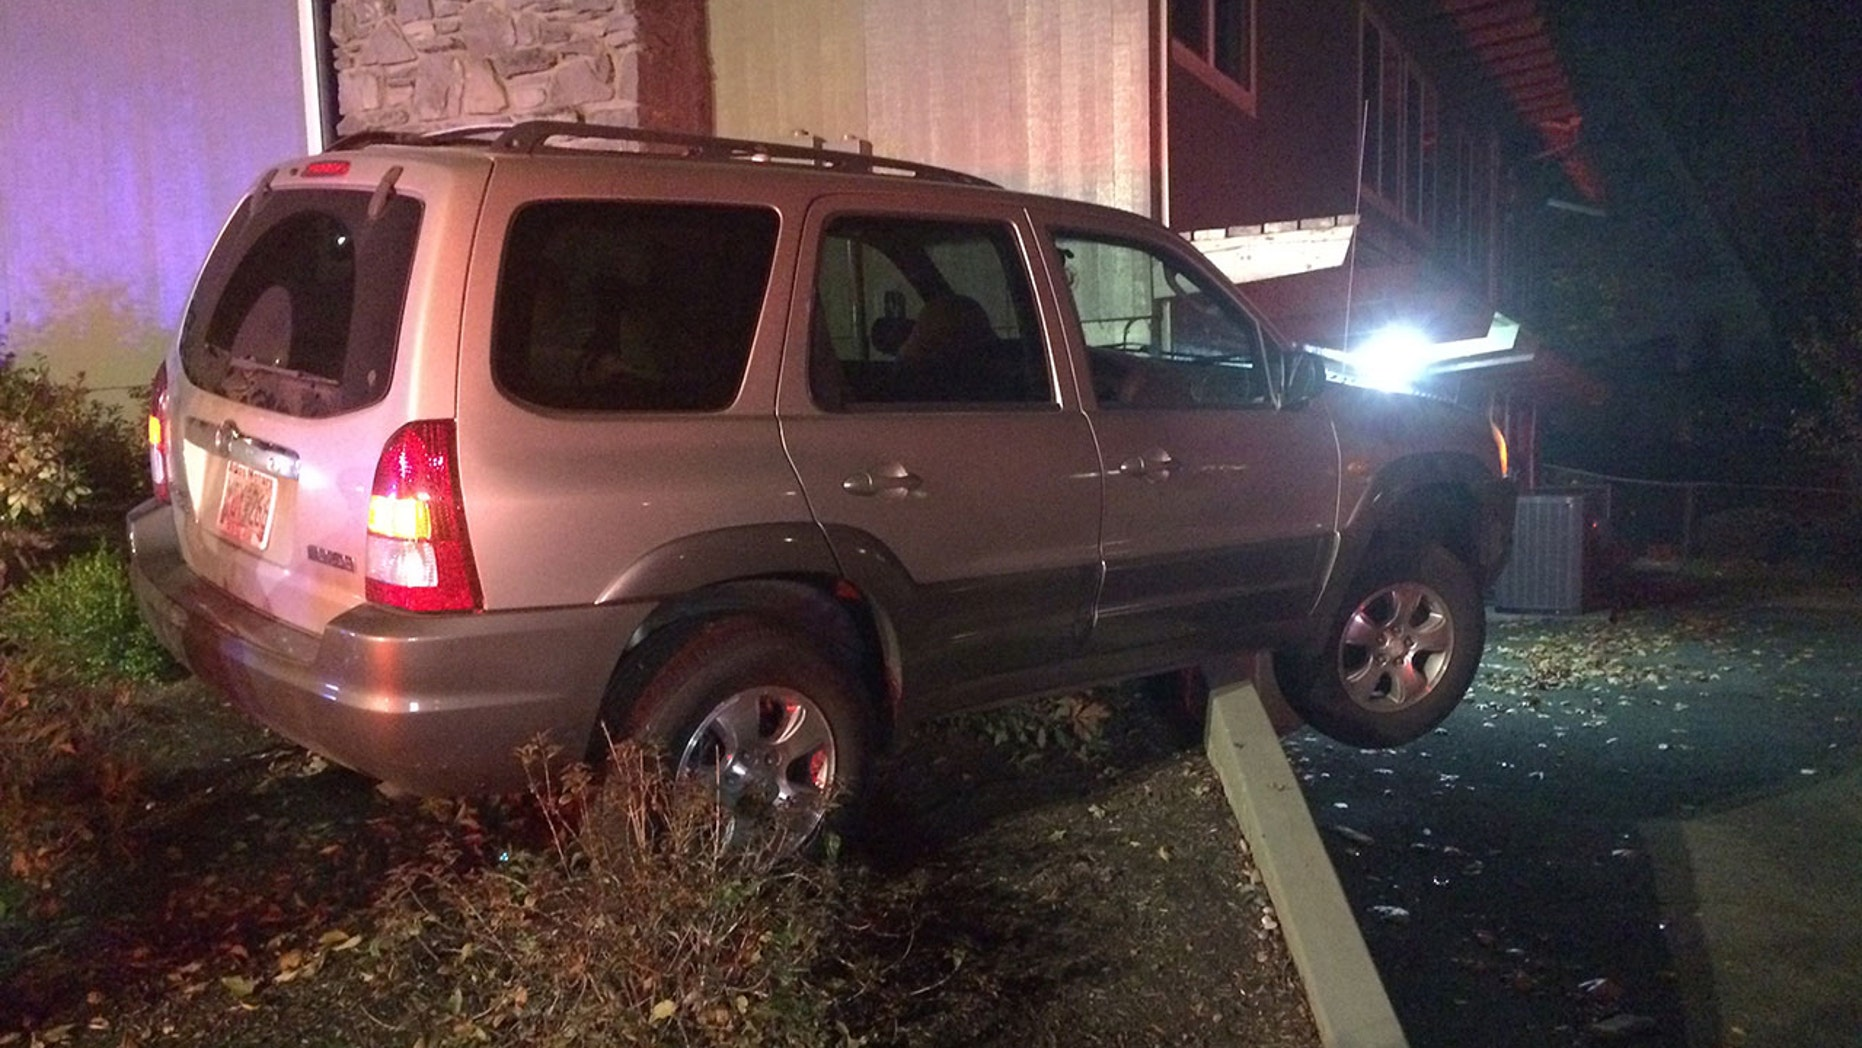 A pregnant woman was injured after deputies said she was dragged and run over by her own vehicle.